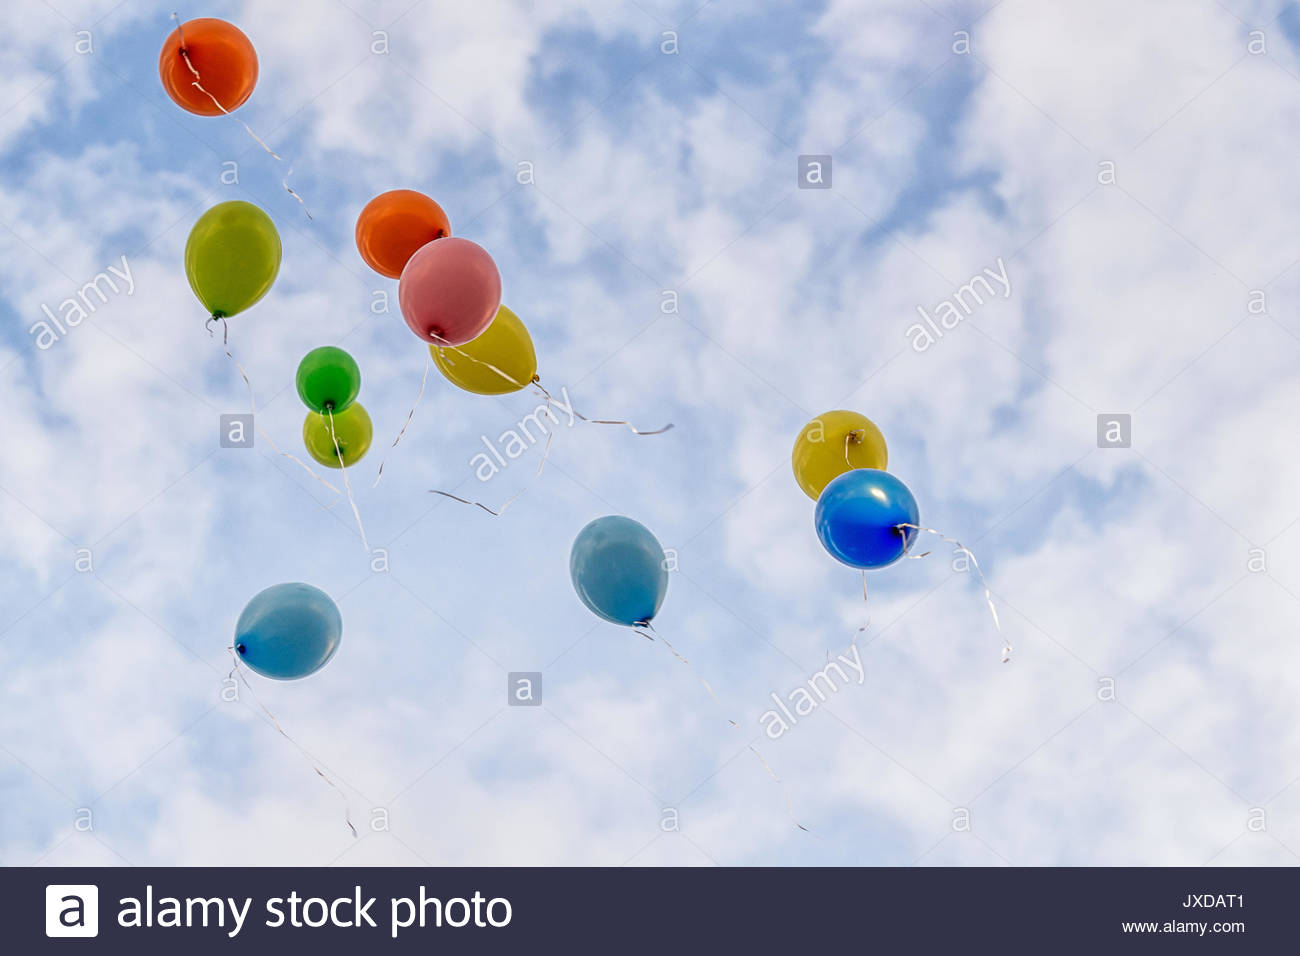 how to keep a helium balloon inflated